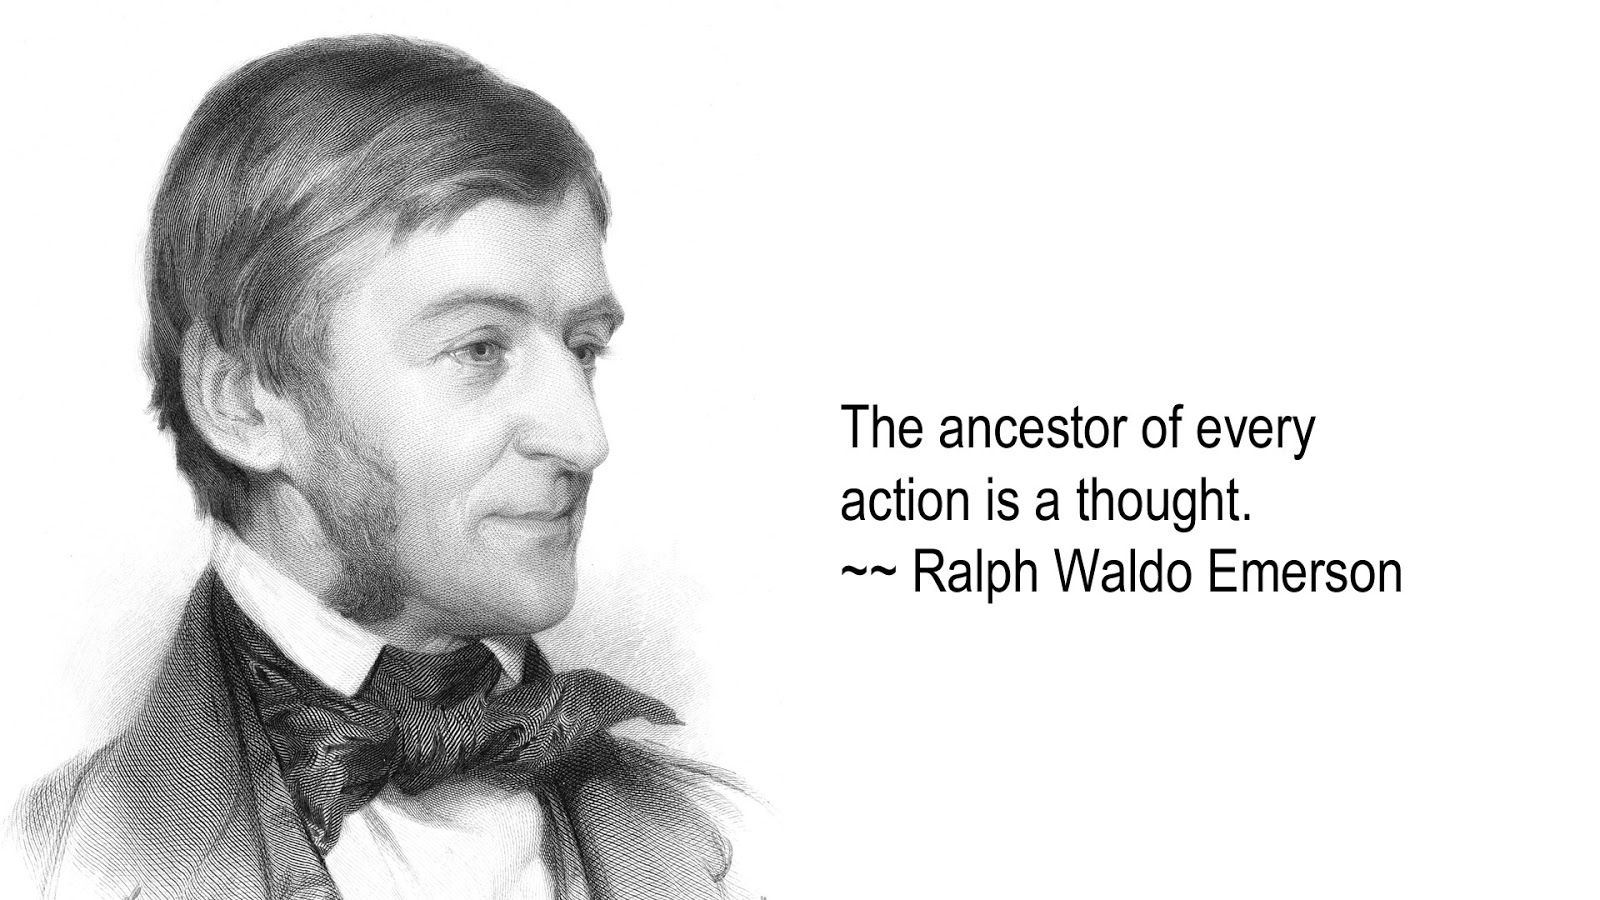 016 Ralph Waldo Emerson Essays Essay Unusual Nature And Selected By Pdf Download First Second Series Full